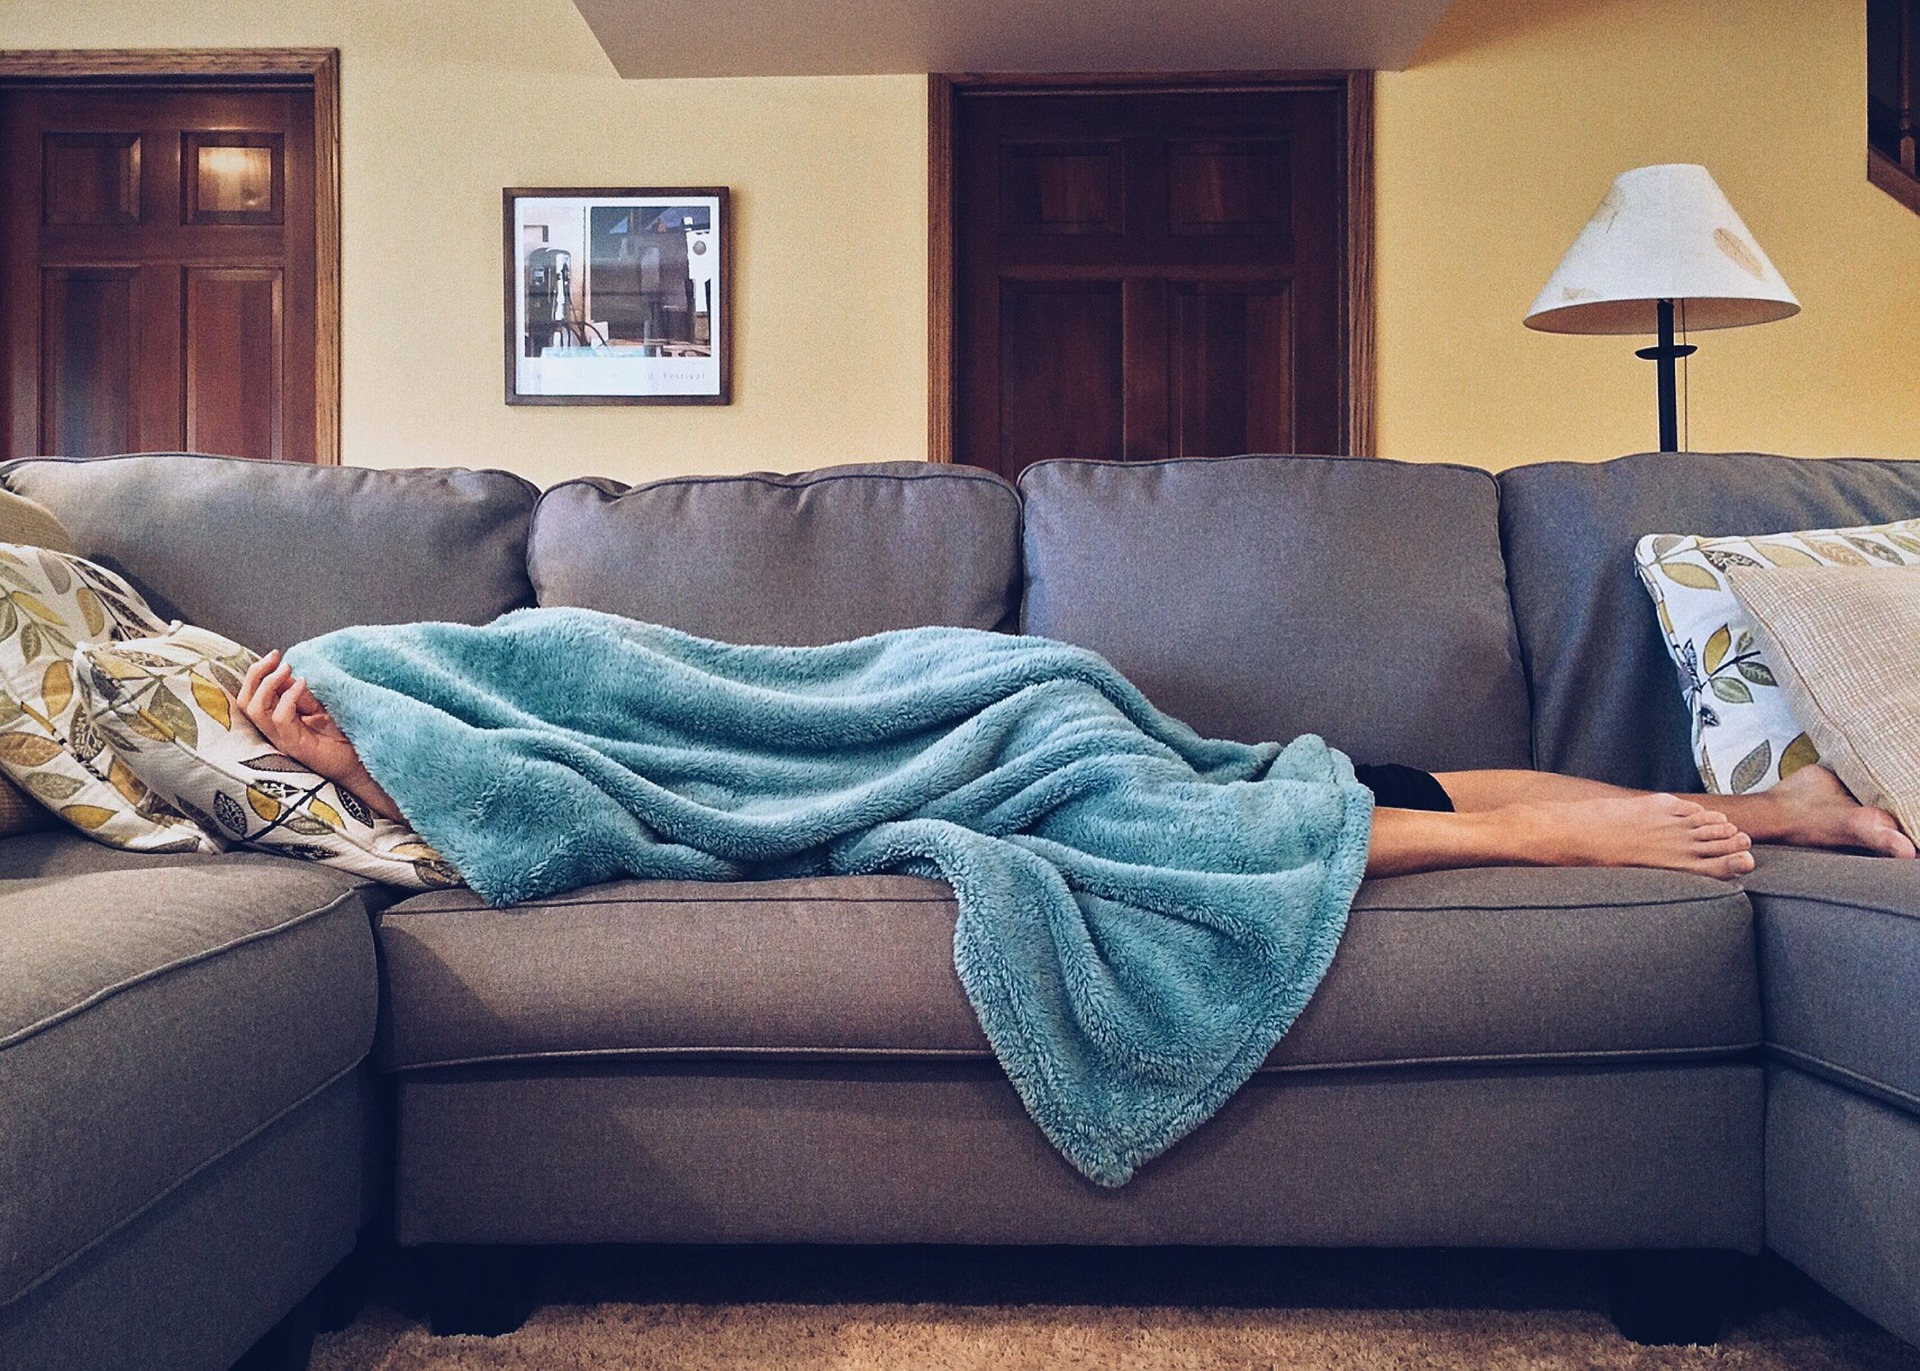 What Factors Affect Your Home's Indoor Air Quality?